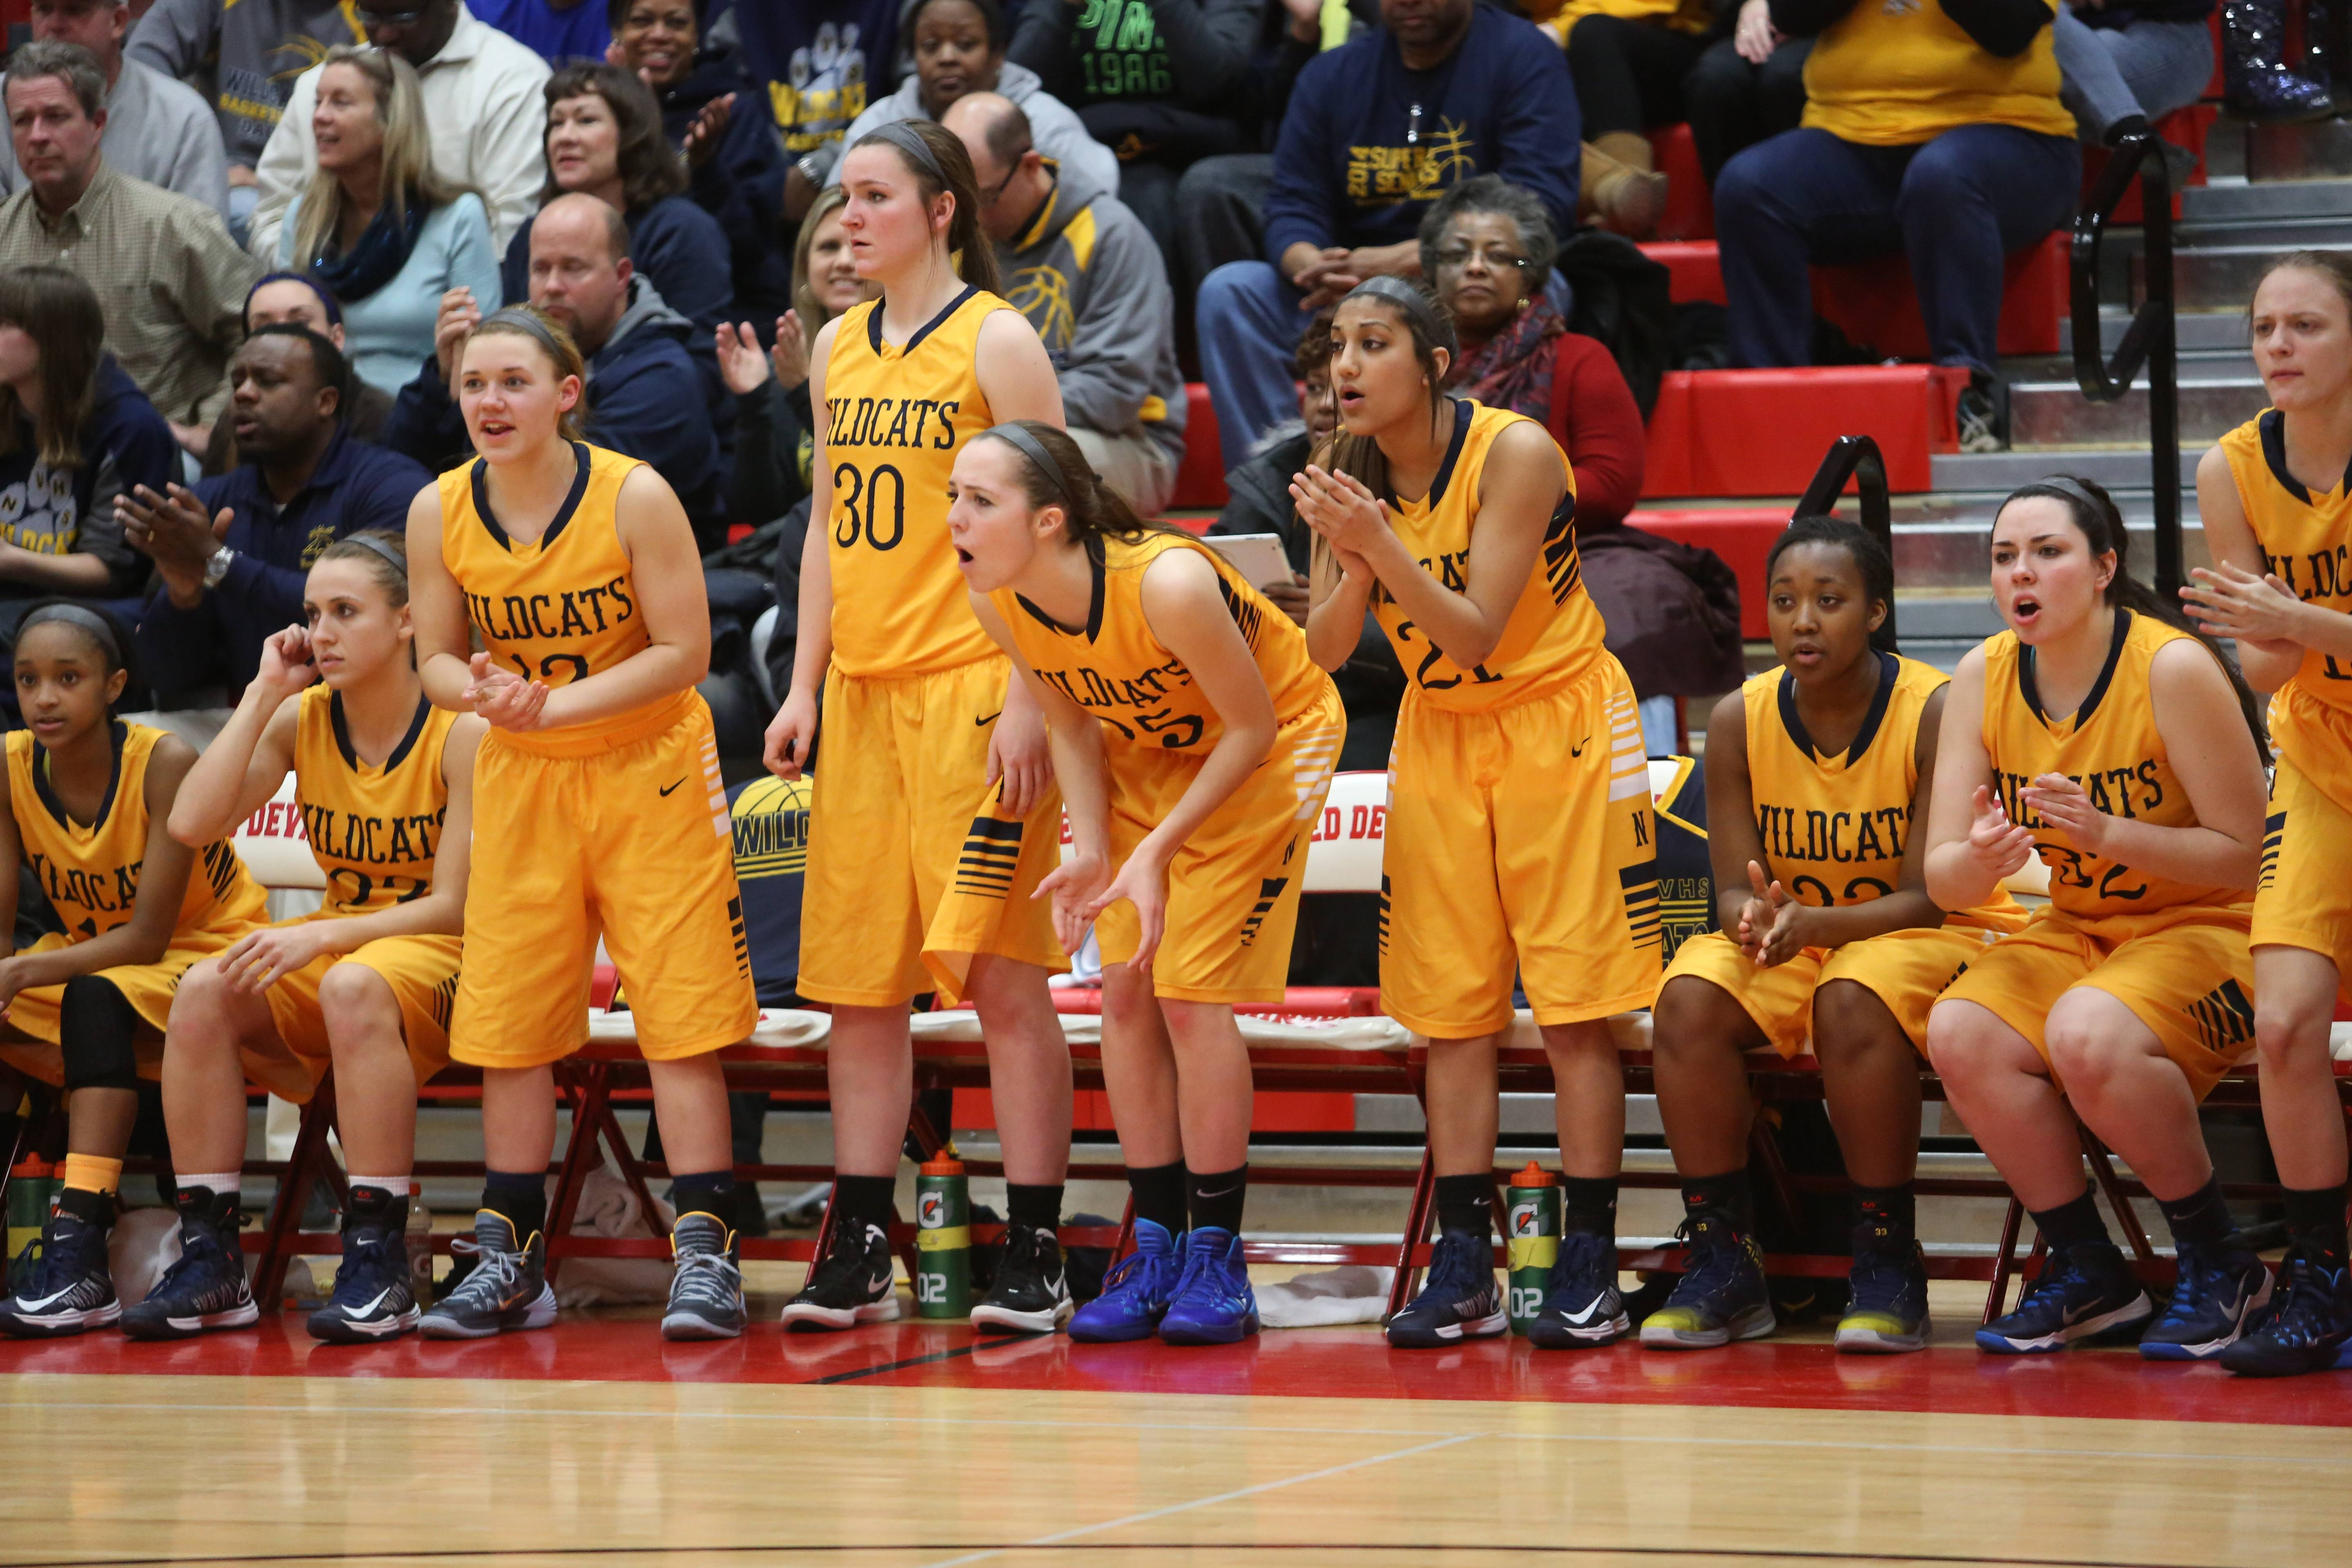 Neuqua Valley played Whitney Young in Class 4A girls basketball supersectional action at Hinsdale Central, Monday, March 3.